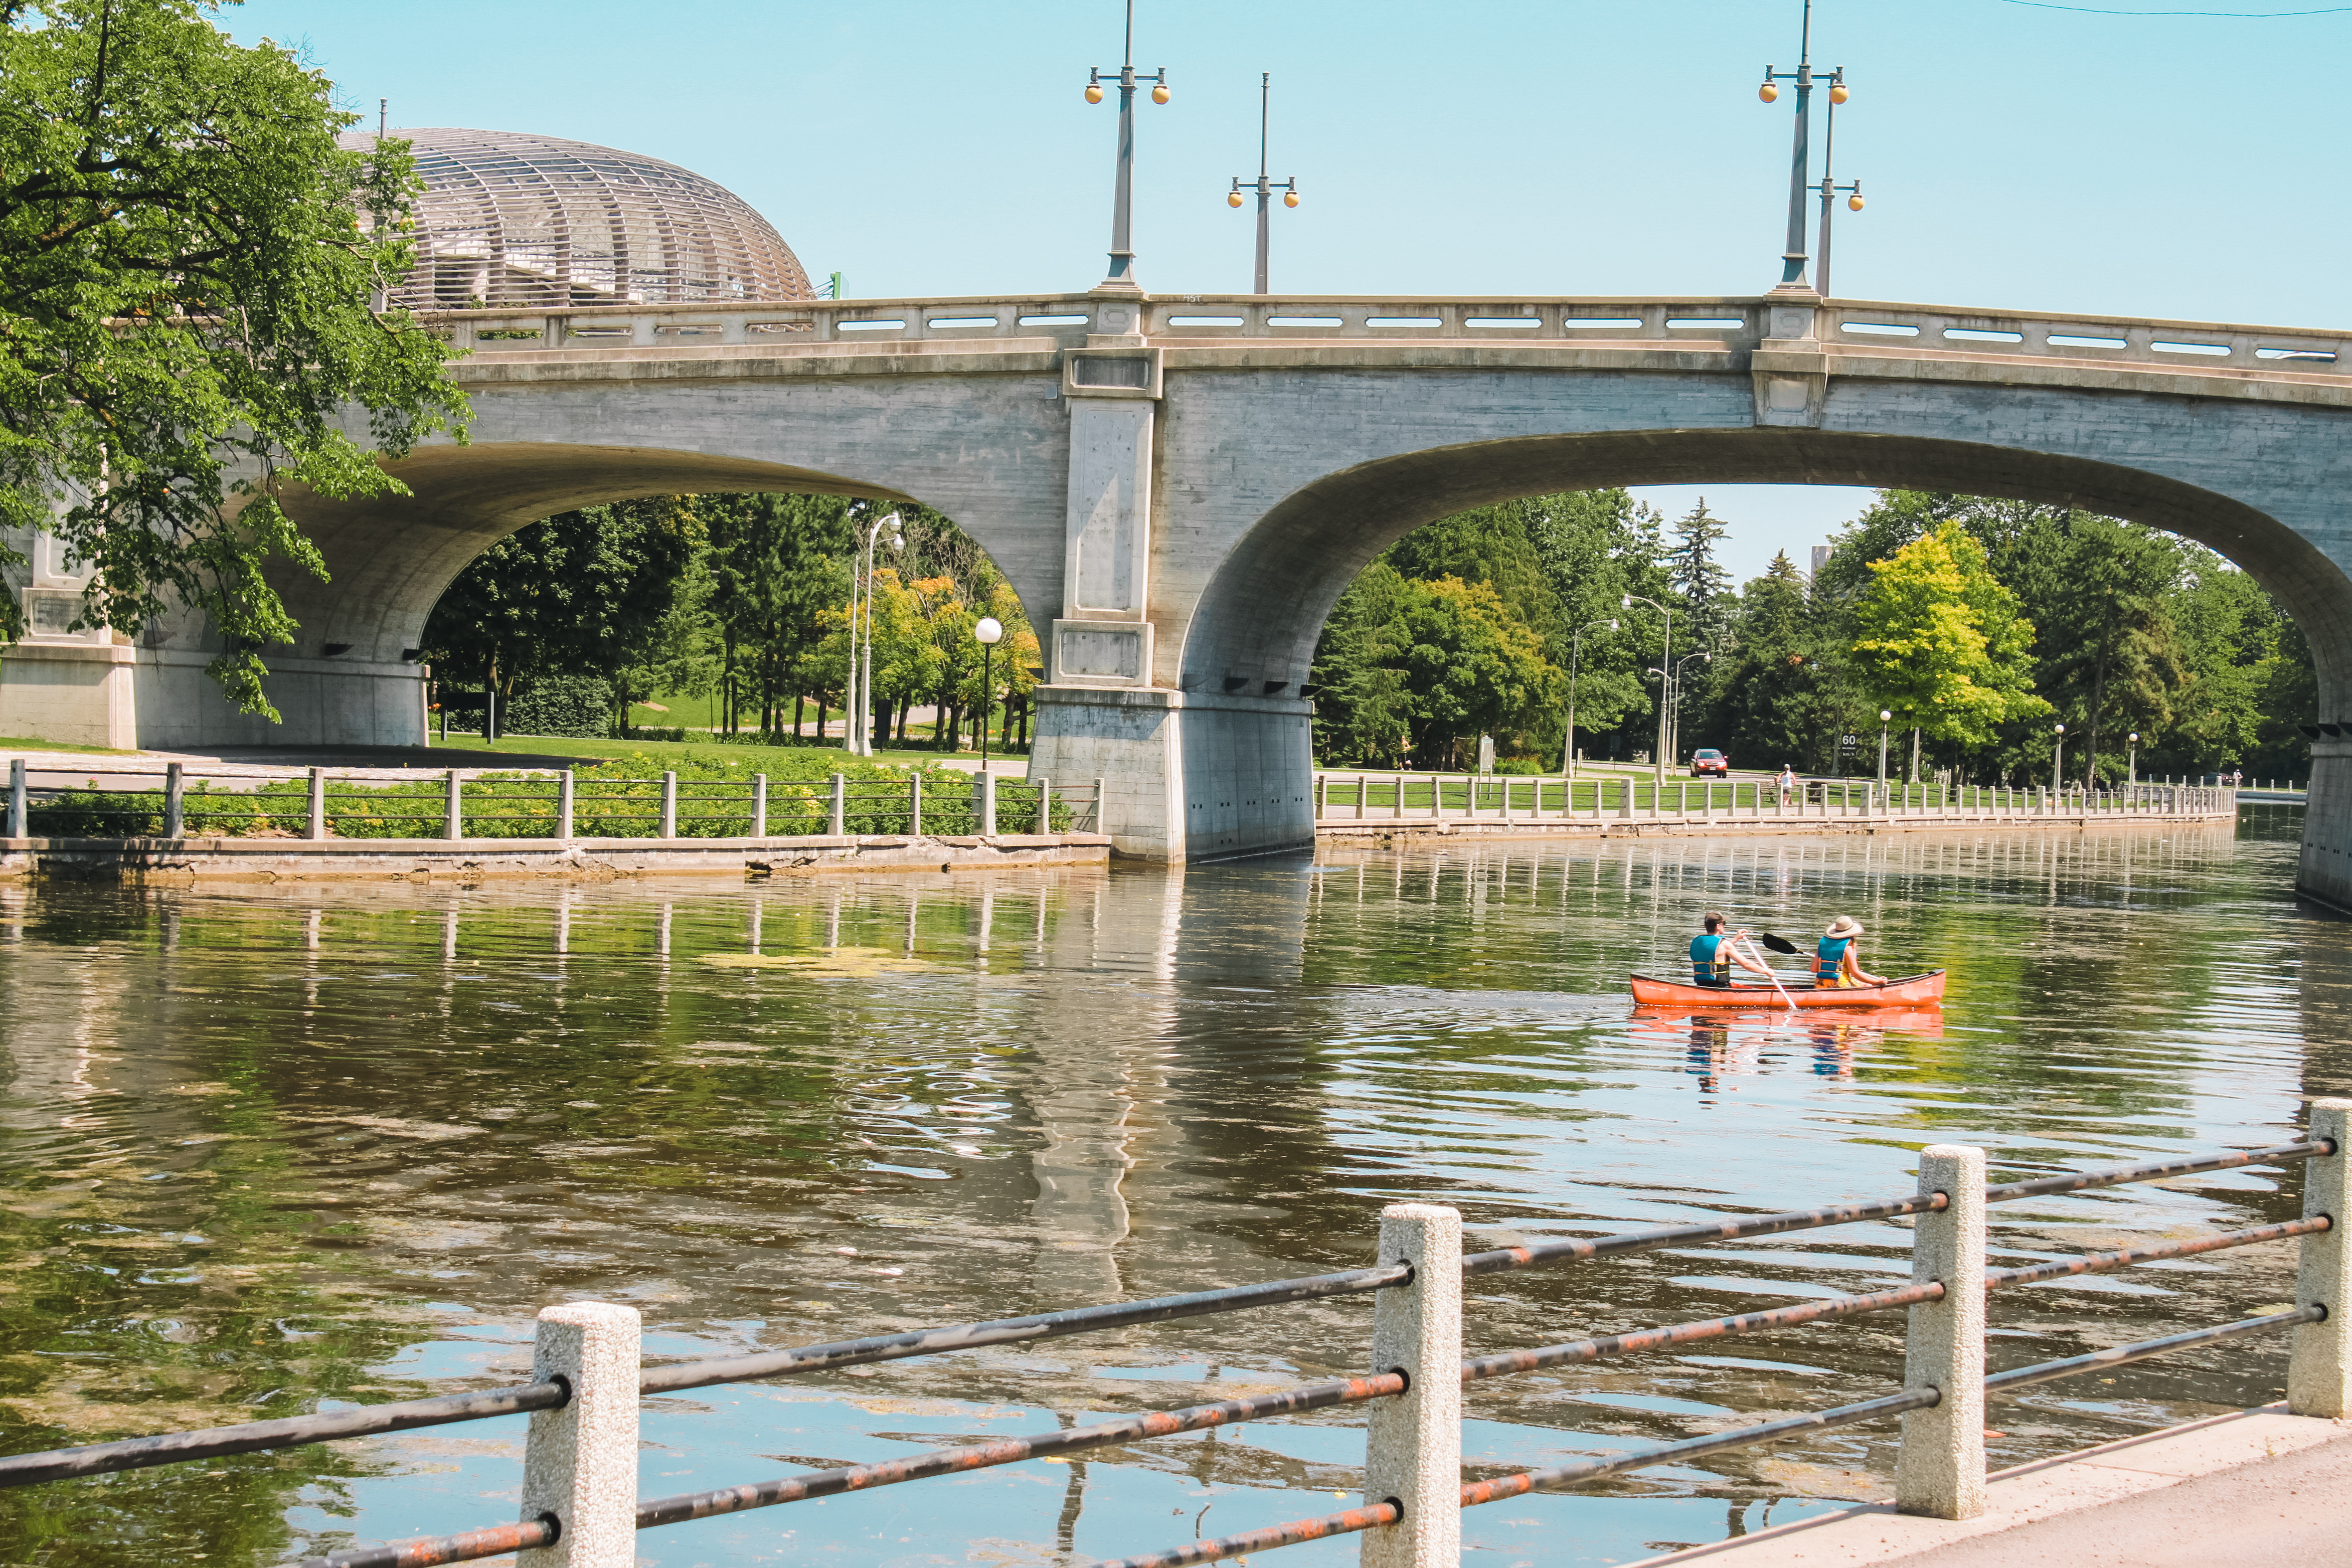 Canoeing in the Glebe, Rideau Canal